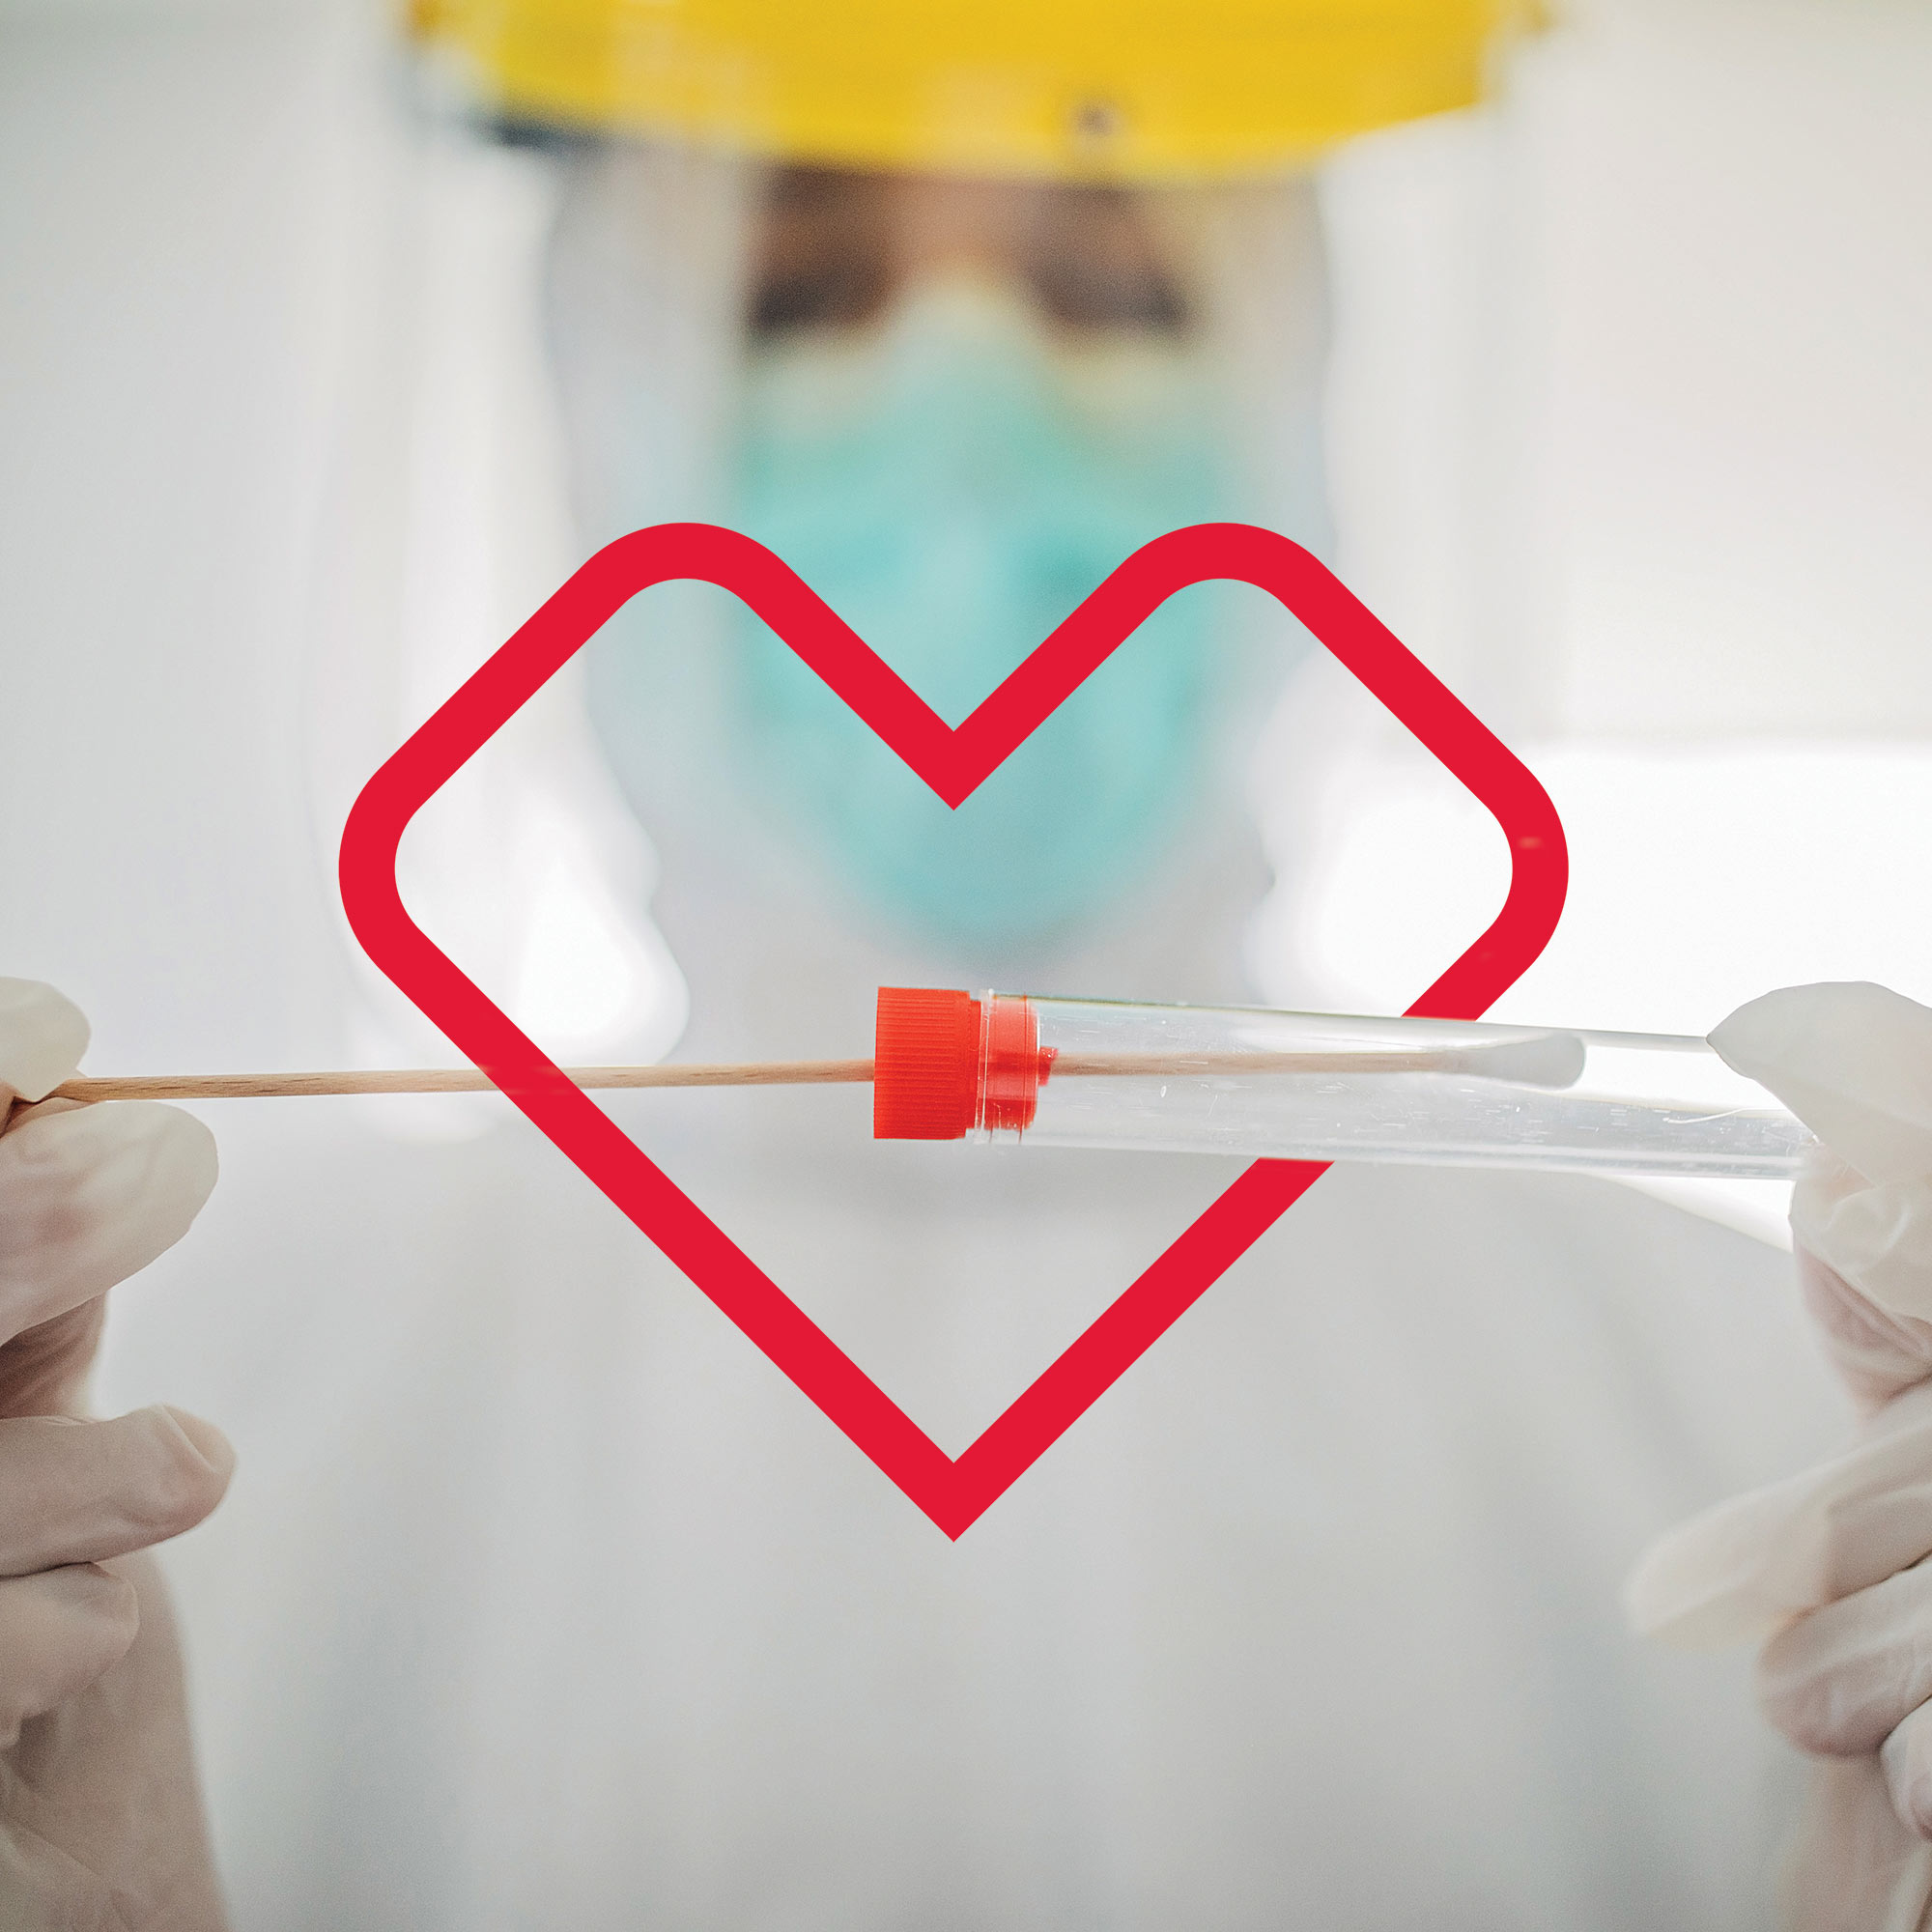 A medical professional, in full personal protective equipment (PPE), inserts a swab into a vial to be processed to test for COVID-19. The vial is surrounded by a red-colored CVS Health heart outline.